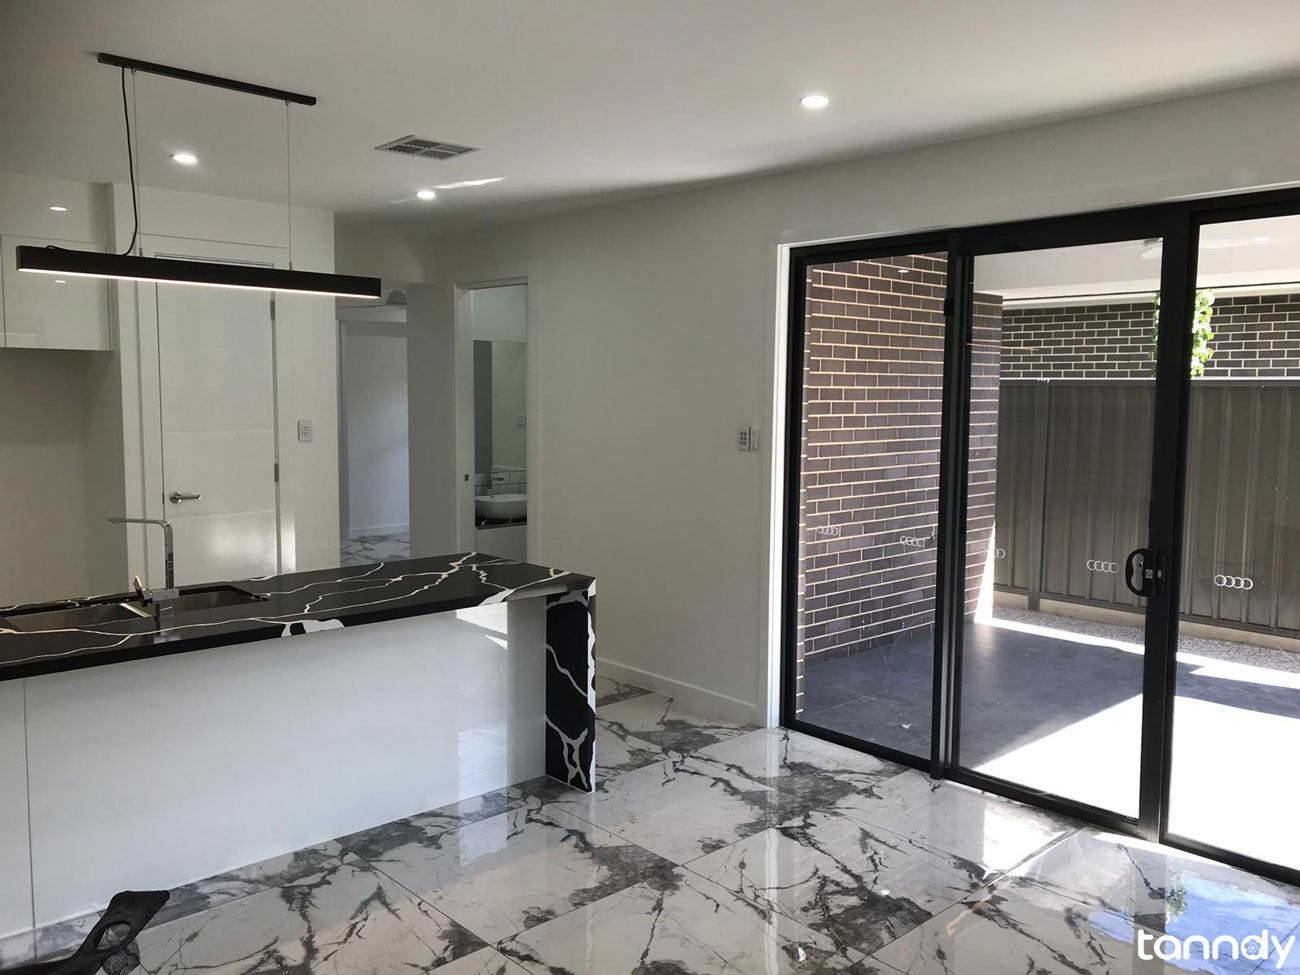 Entrance area with black marble tiles